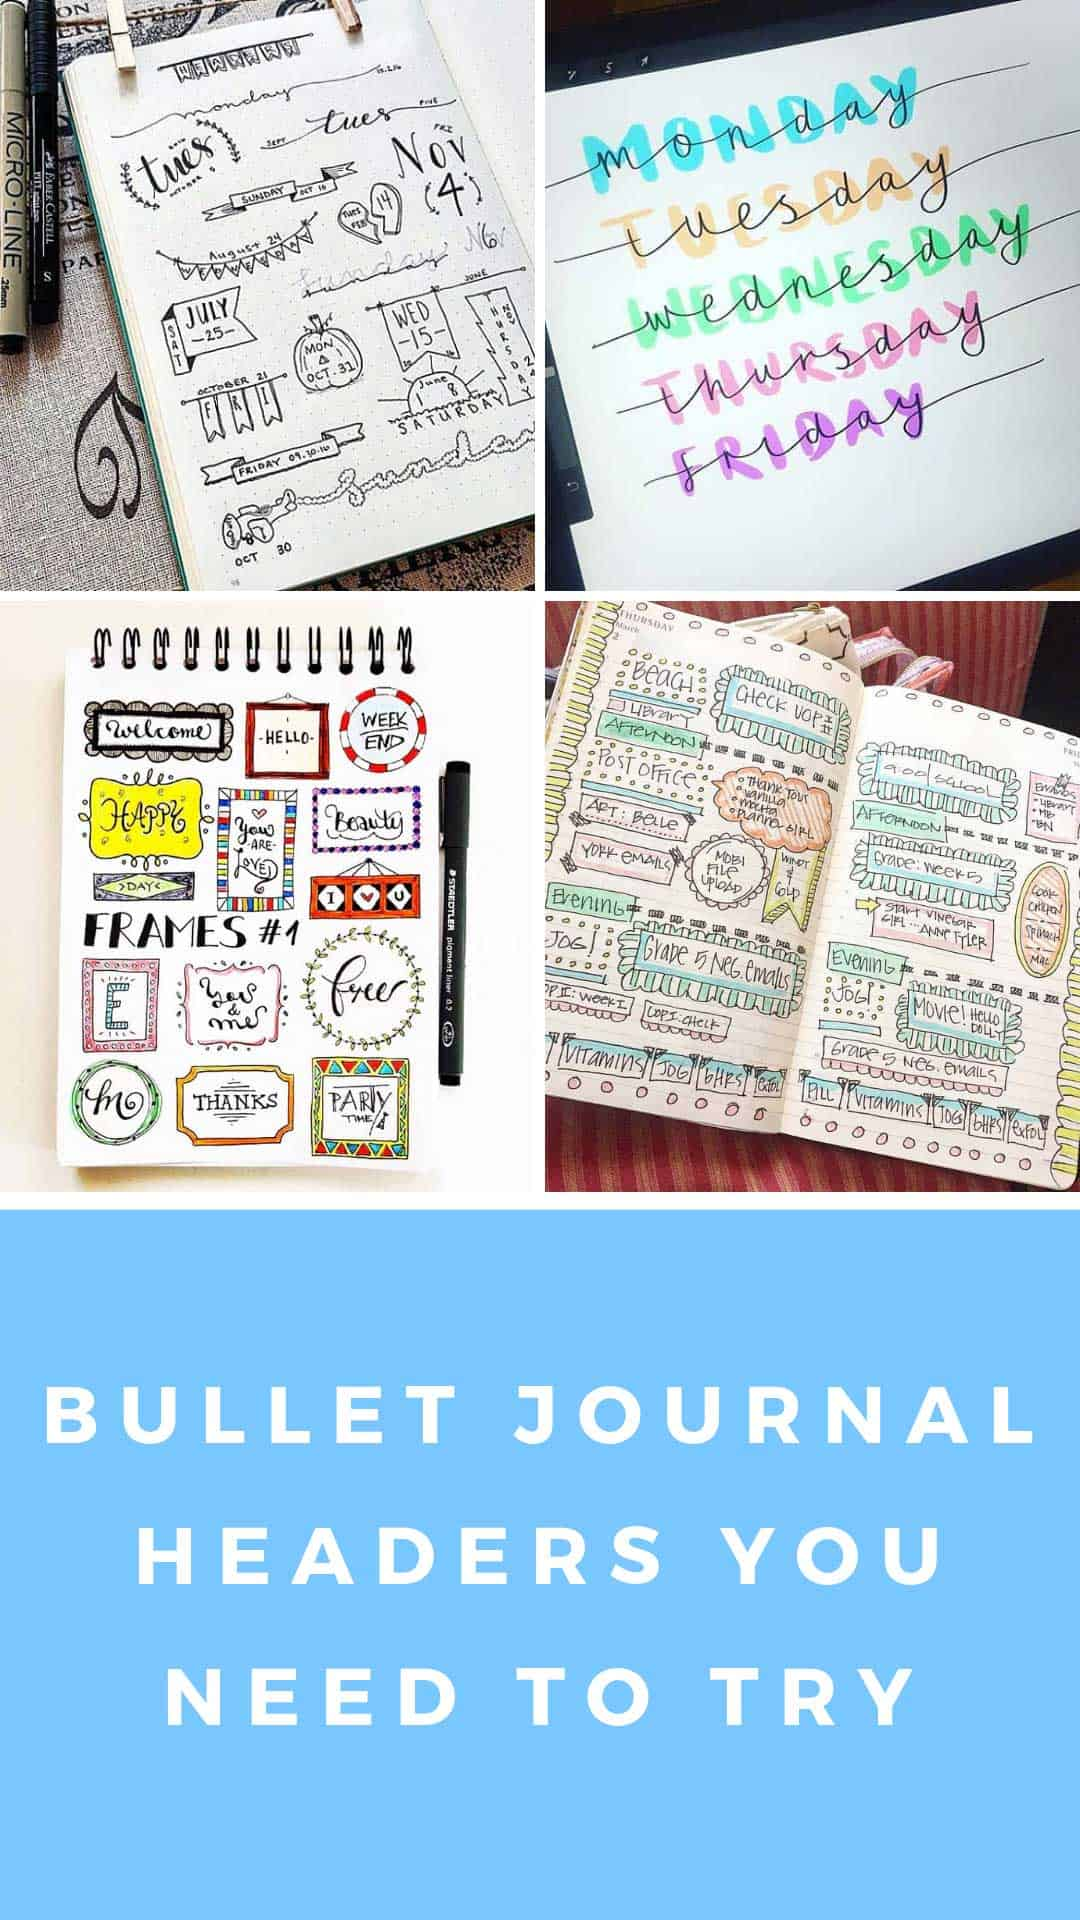 BUJO headers you'll want to try in your own bullet journal ASAP! #bulletjournal